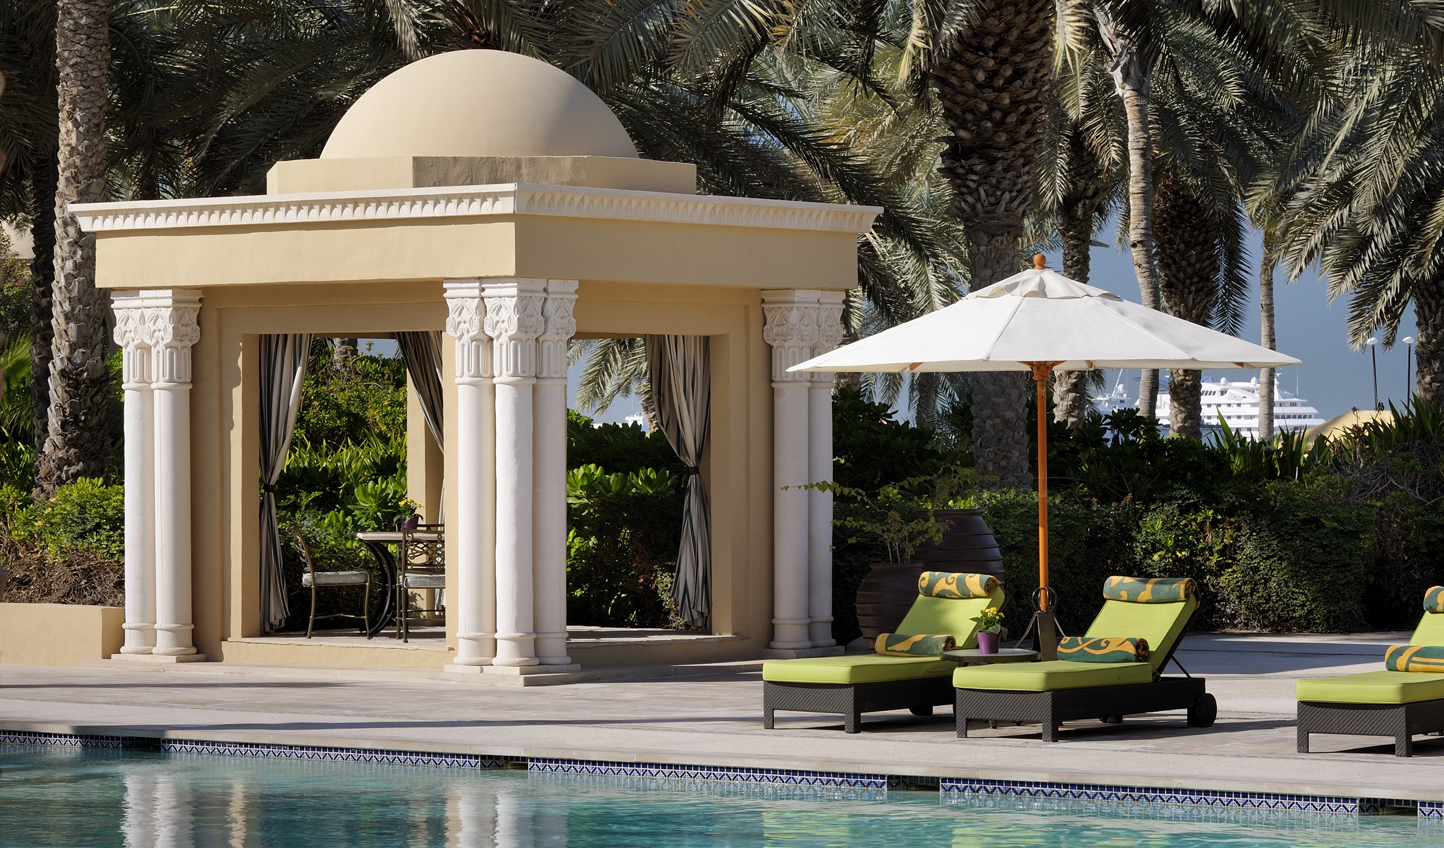 Spend your days lounging by the pool in the shade of the swaying palm trees